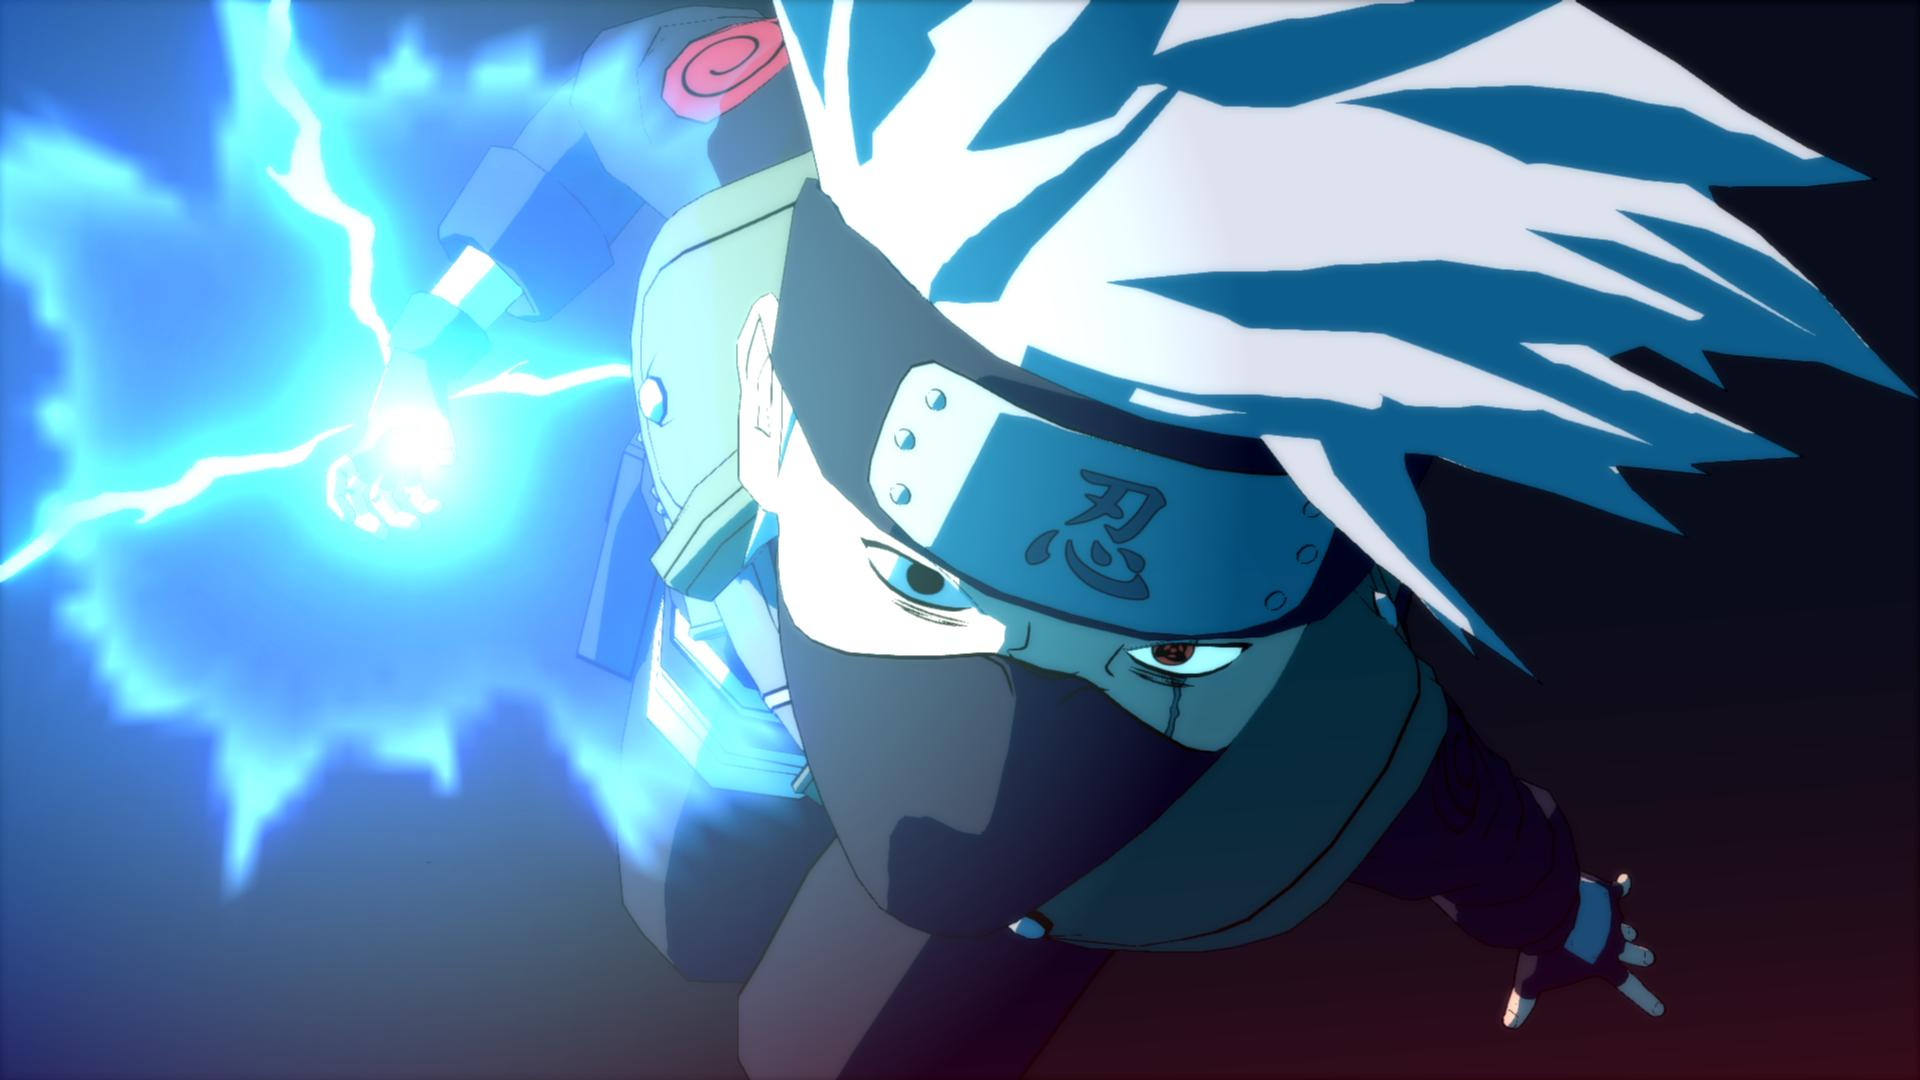 kakashi Computer Wallpapers Desktop Backgrounds 1920x1080 ID 1920x1080